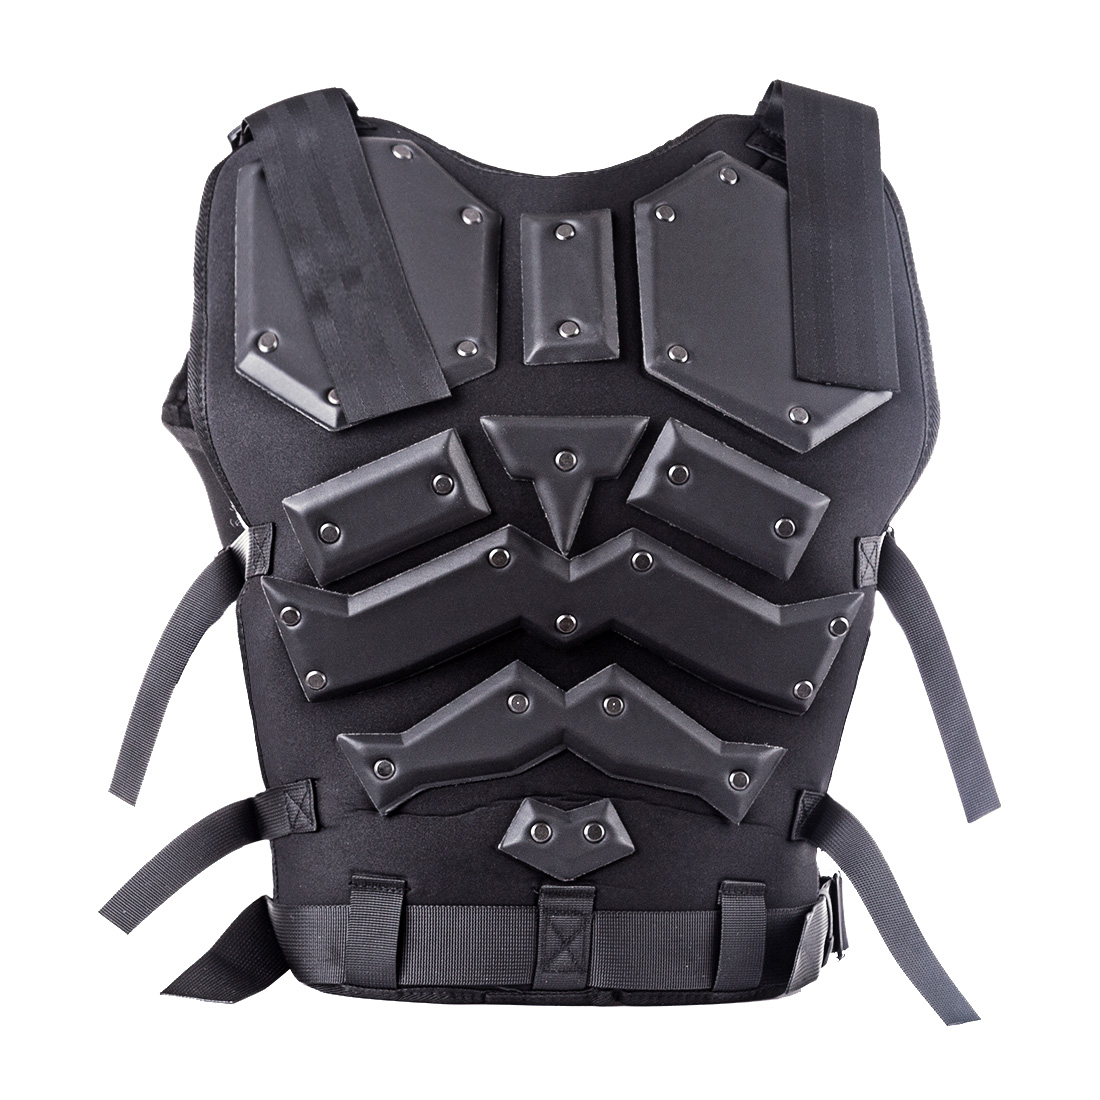 WST Kong Kim Military Tactical Vest 600D Nylon Airsoft Paint Vest Special Forces Outdoor Hunting Live CS Tactical Equipment